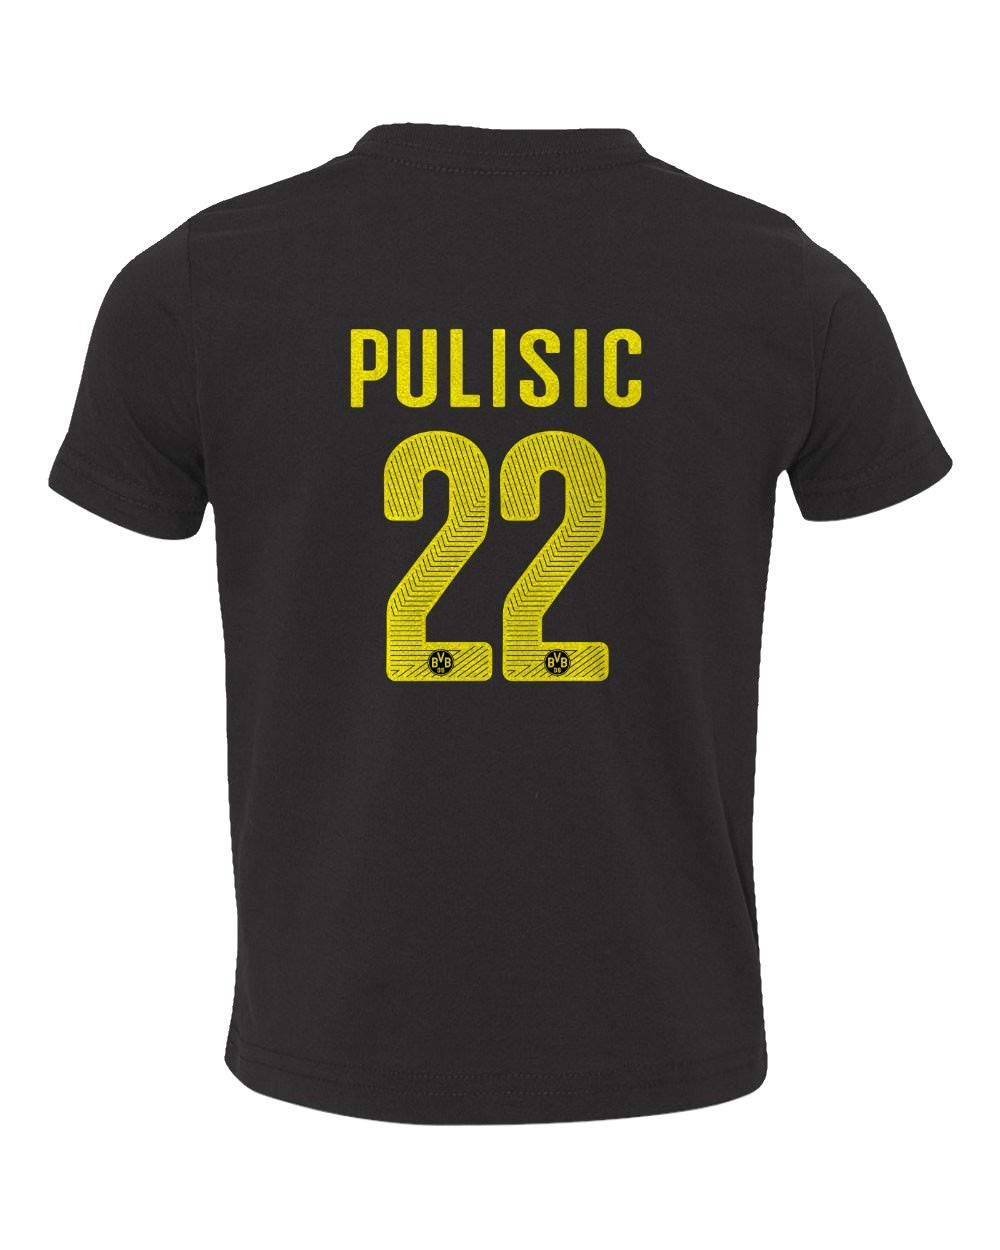 71284ce88a7 Amazon.com  Spark Apparel Soccer Jersey Style Shirt  22 Pulisic Little Kids  Girls Boys Toddler T-Shirt  Sports   Outdoors